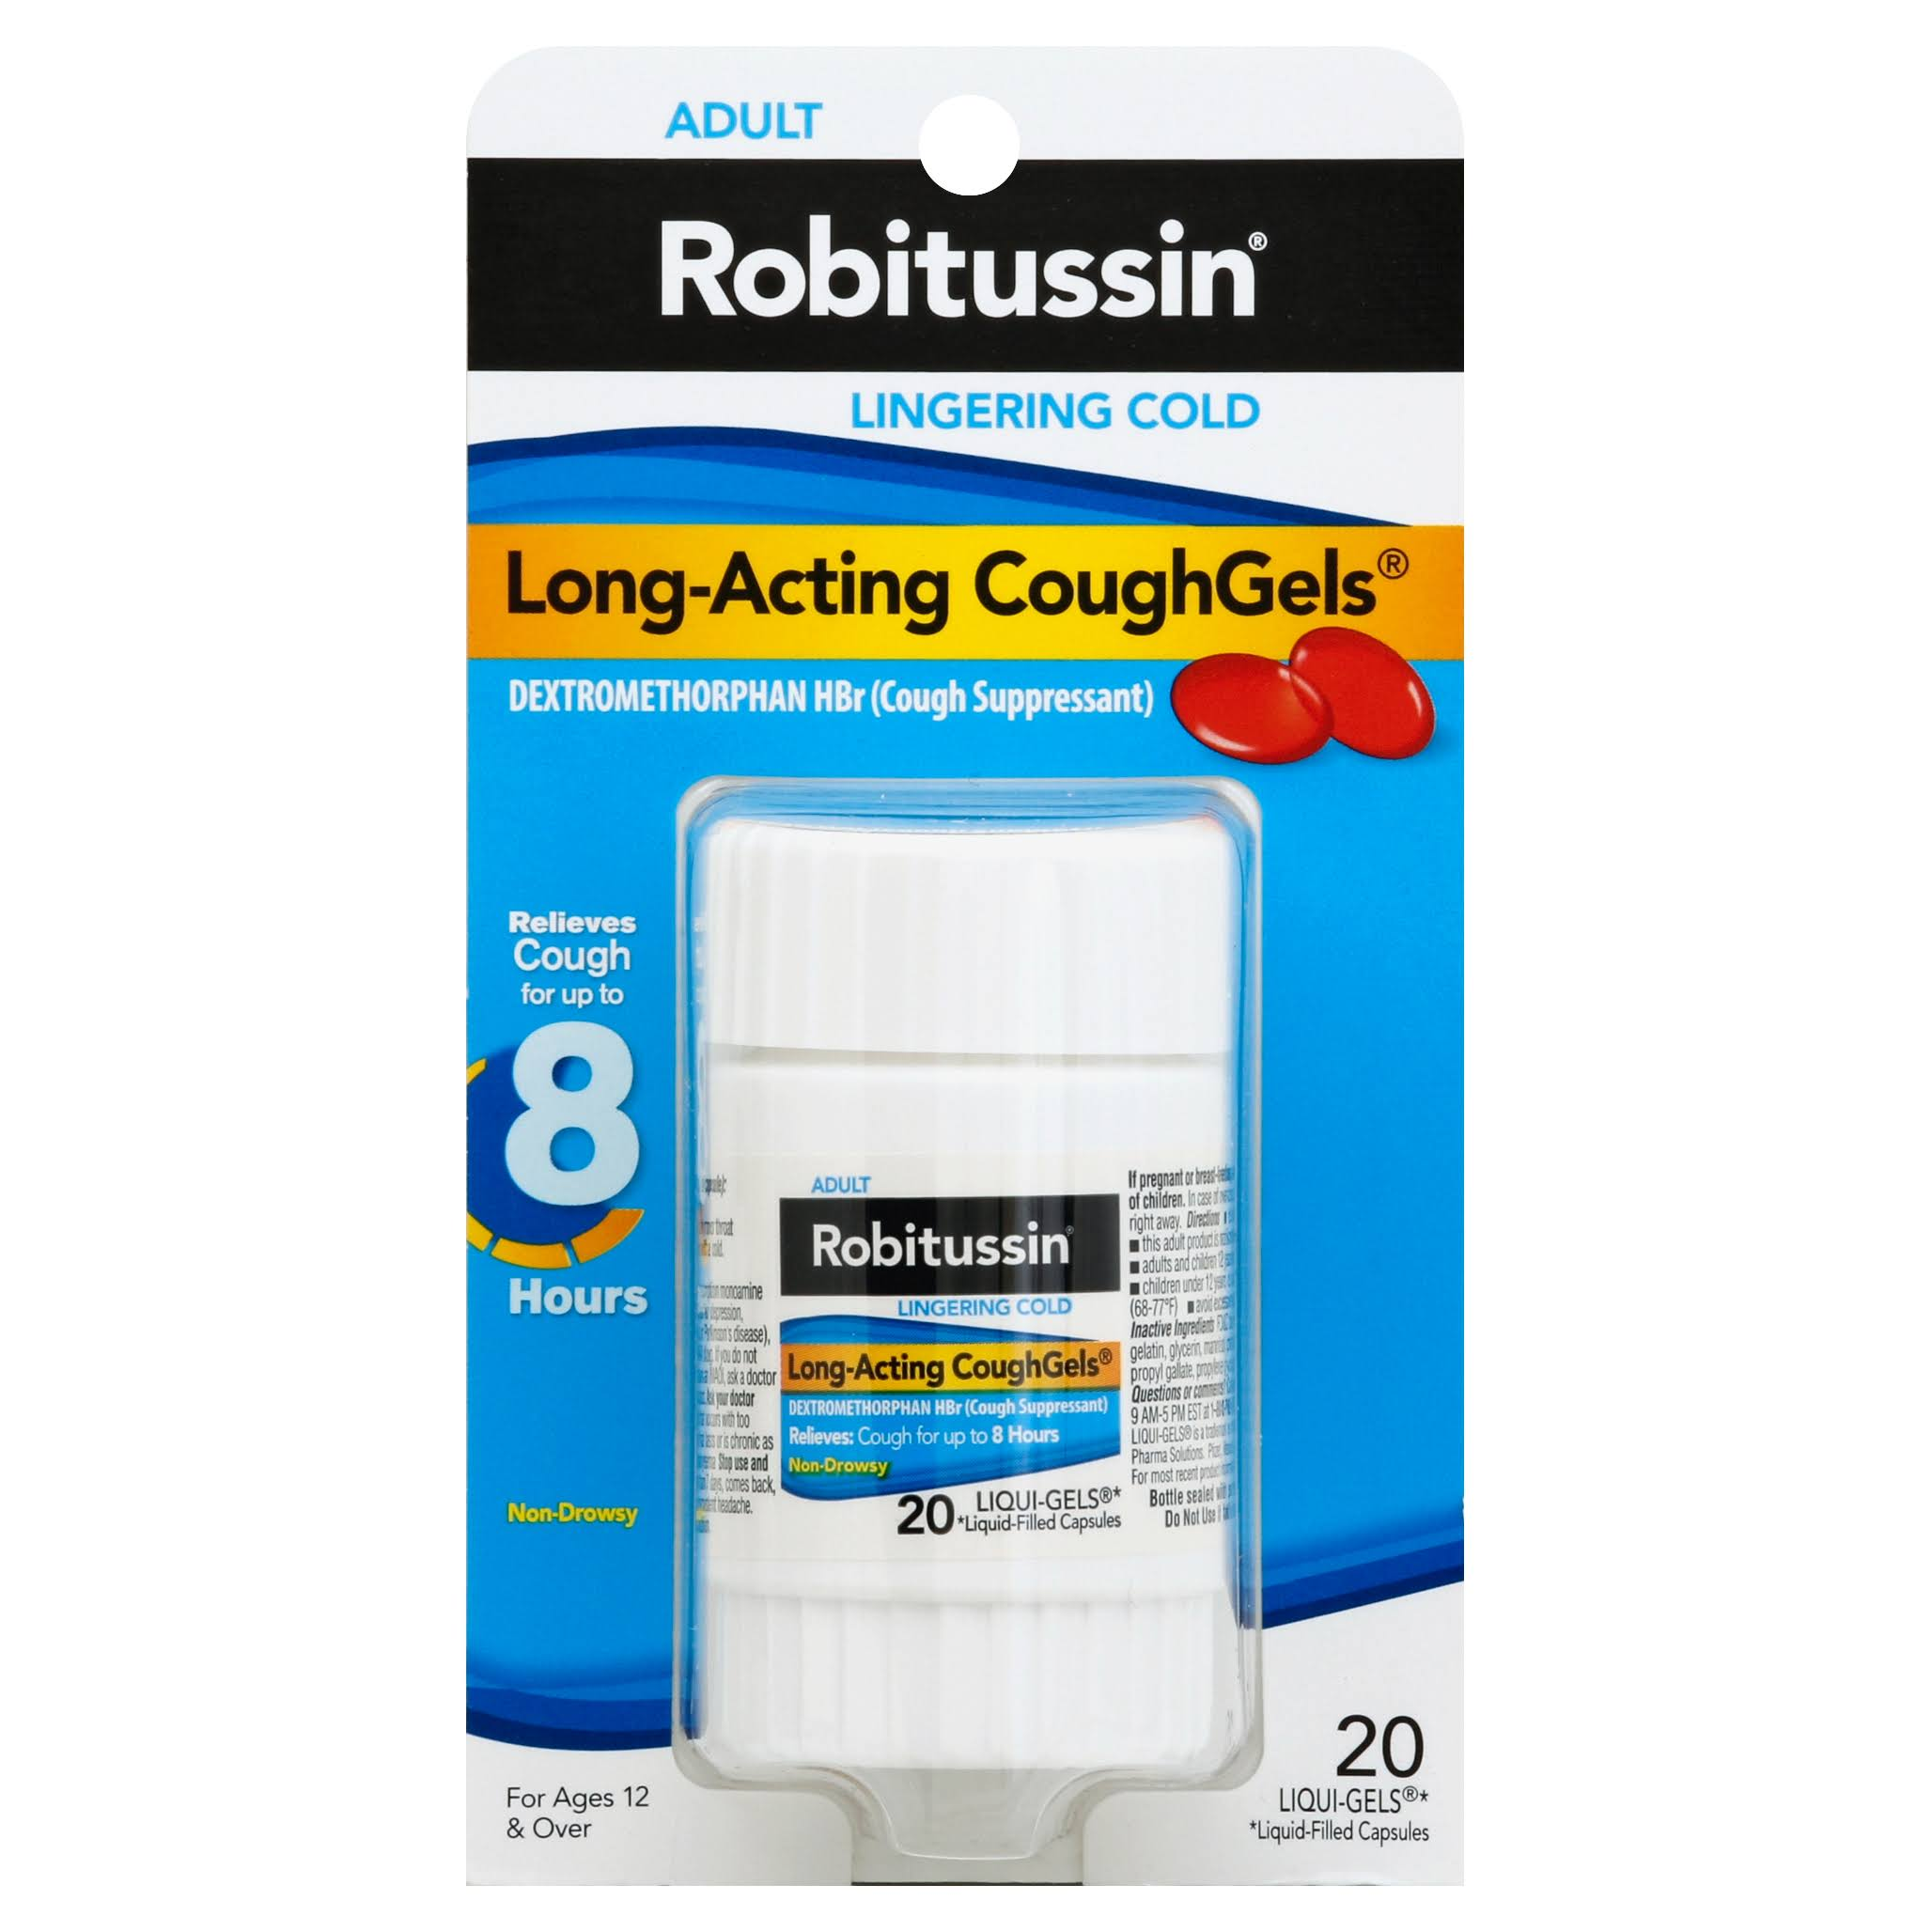 Robitussin Adult Lingering Cold Long-Acting Cough Gels - 20 Pack